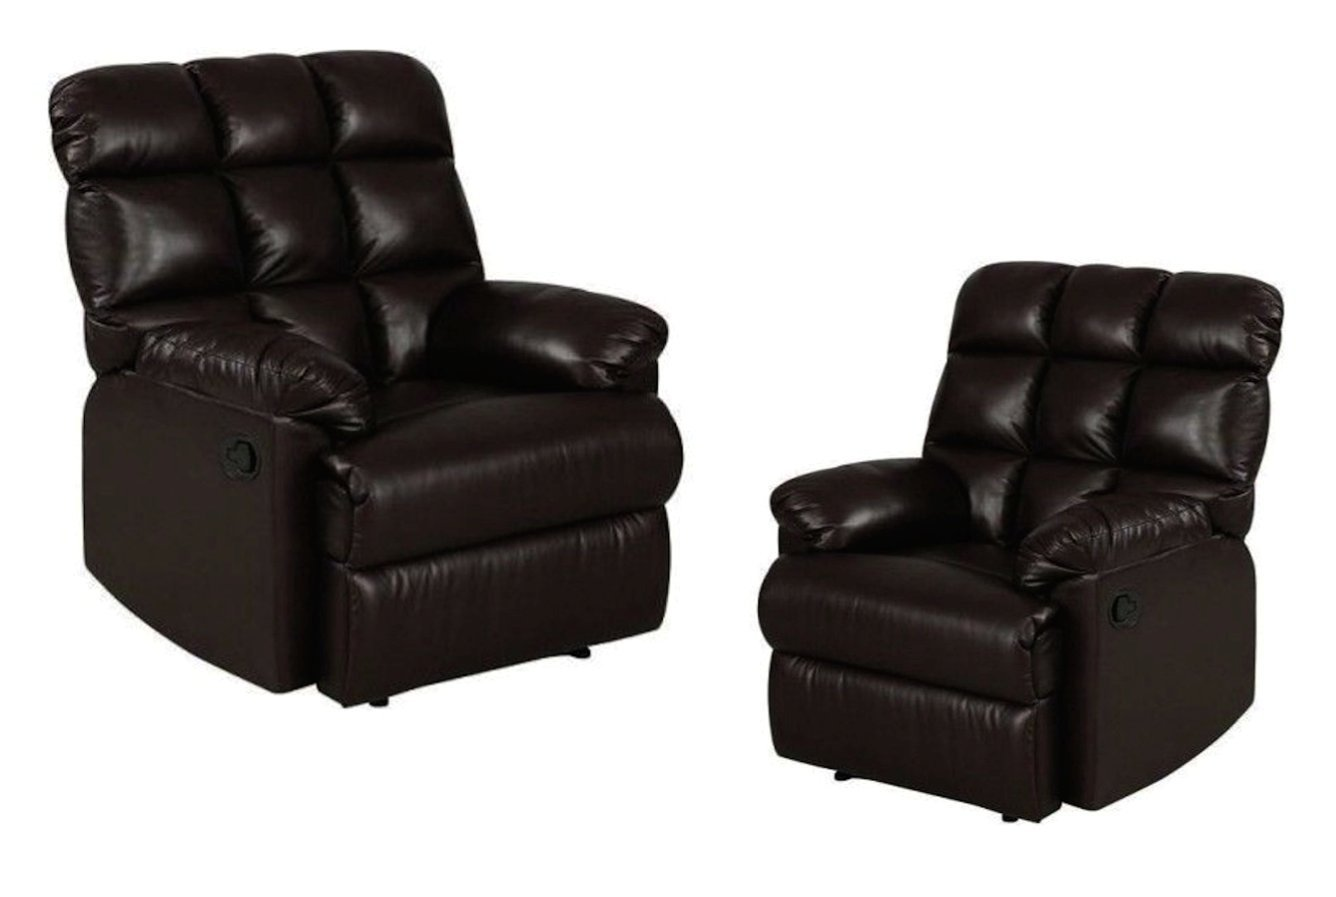 Incredible Buy Leather Recliner Chairs Set Of 2 Large Comfort Bralicious Painted Fabric Chair Ideas Braliciousco